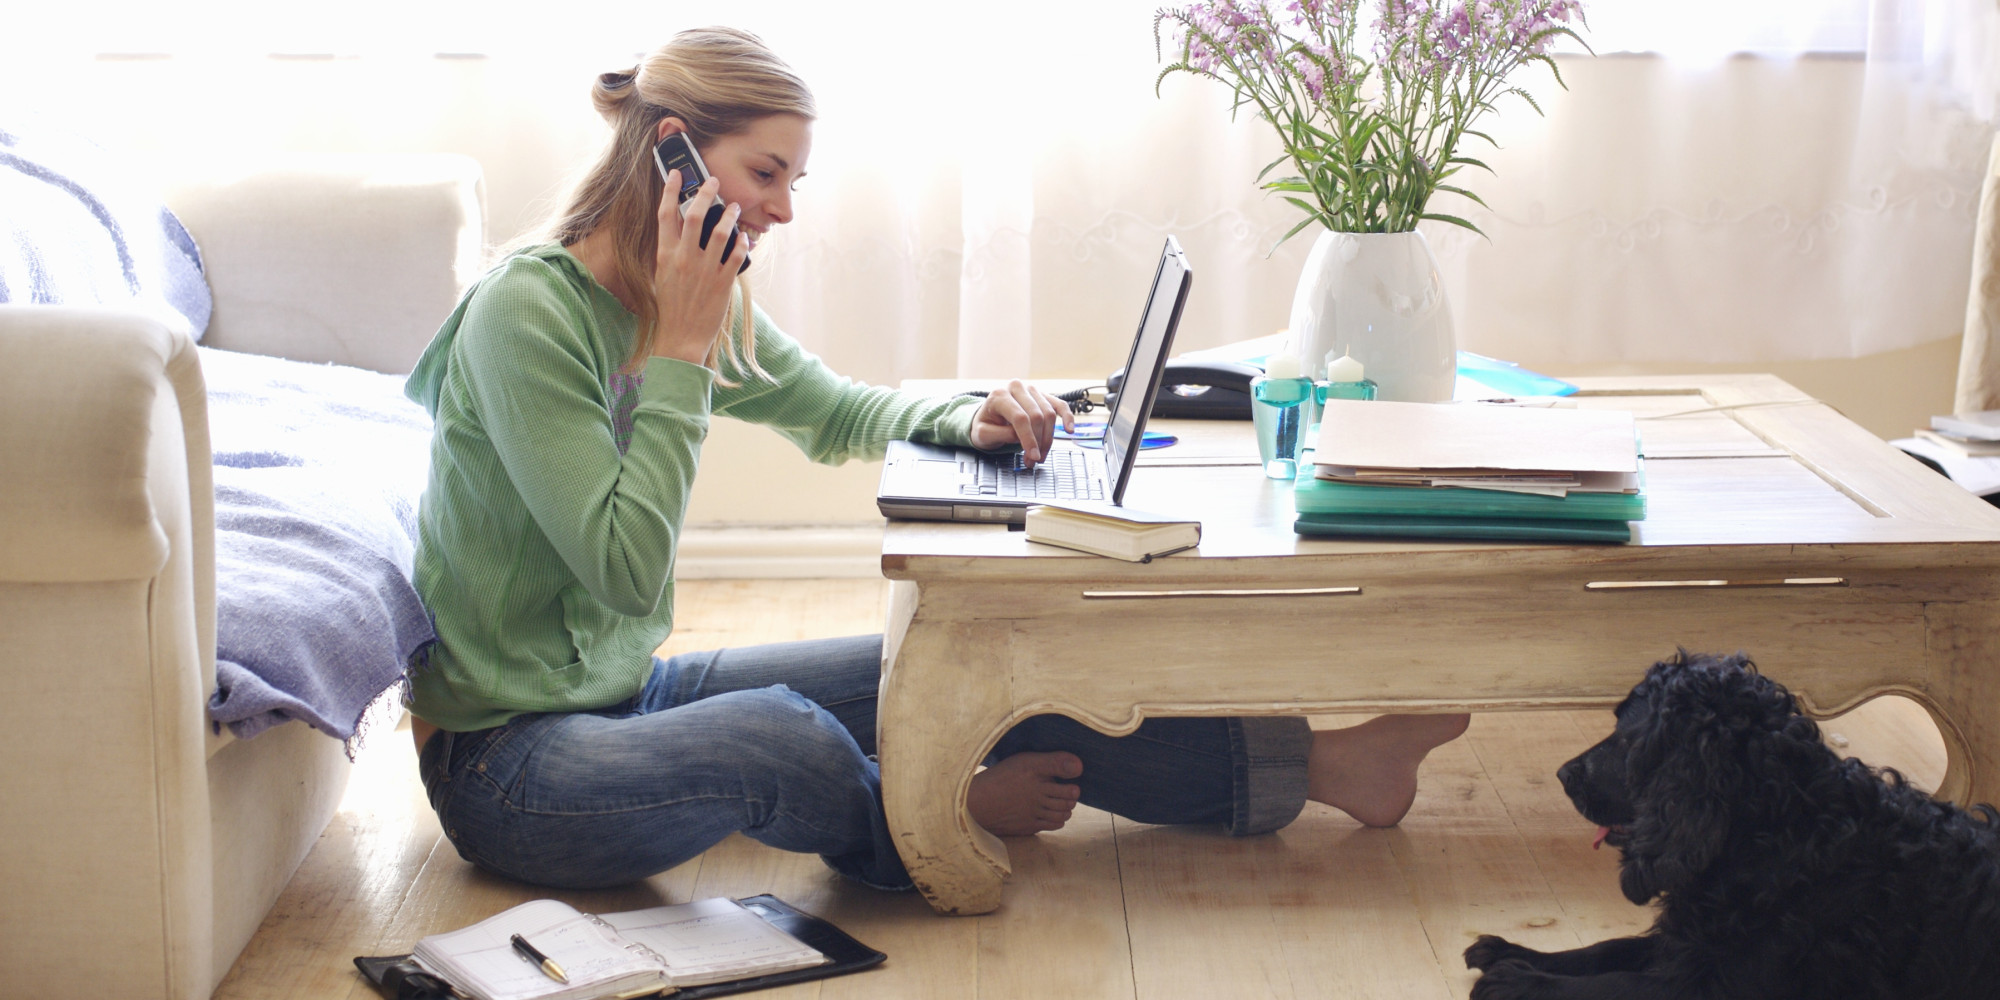 Does Working from Home Hurt Your Career?